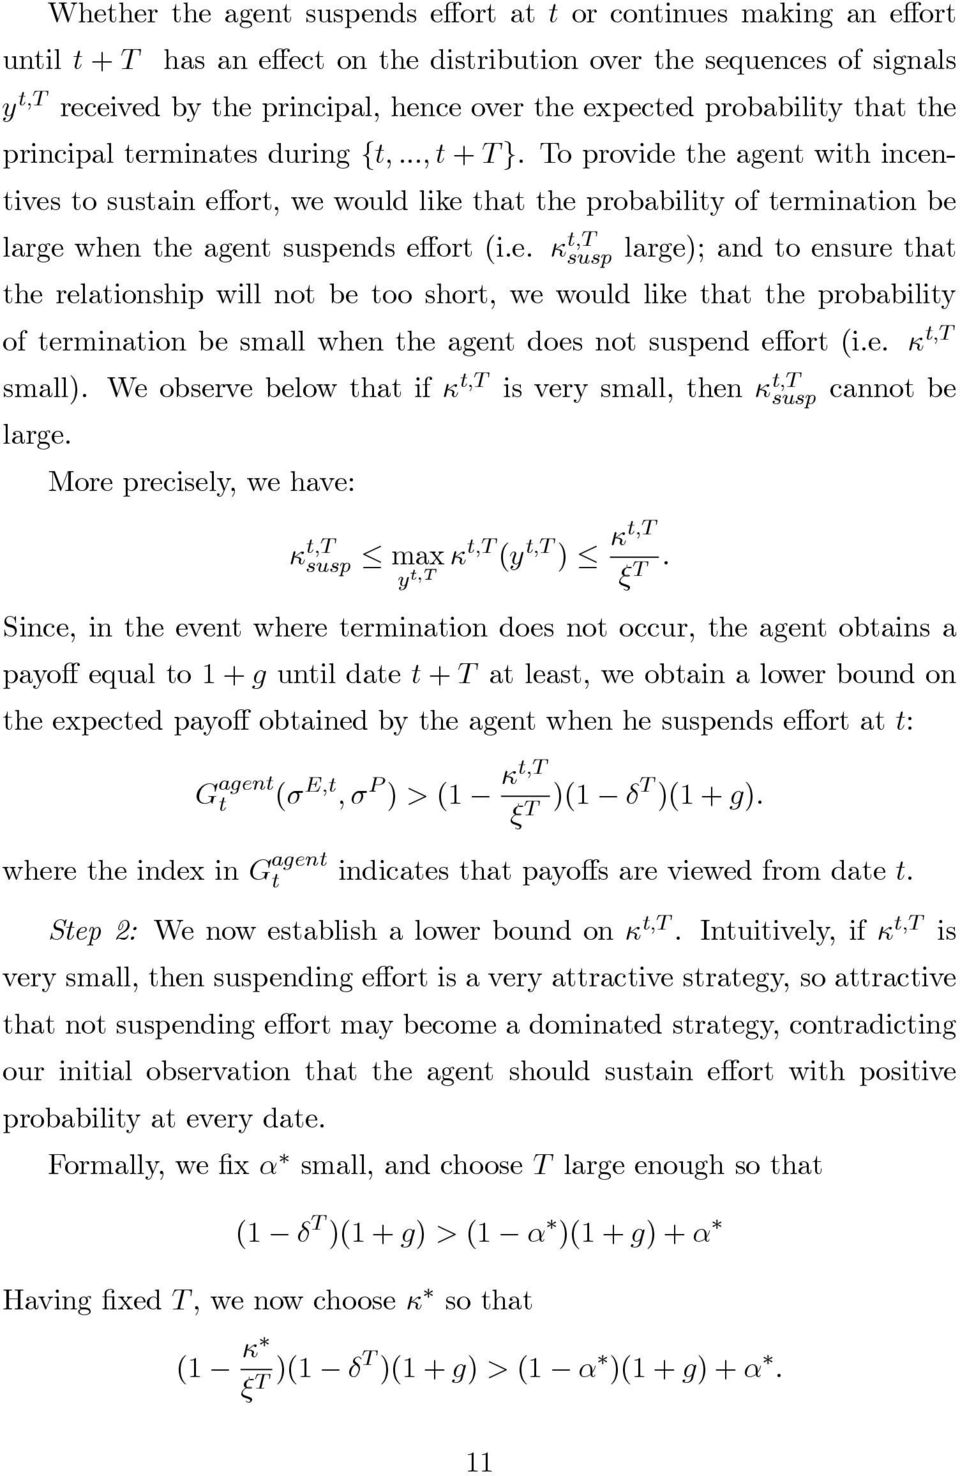 To provide the agent with incentives to sustain effort, we would like that the probability of termination be large when the agent suspends effort (i.e. κ t,t susp large); and to ensure that the relationship will not be too short, we would like that the probability of termination be small when the agent does not suspend effort (i.